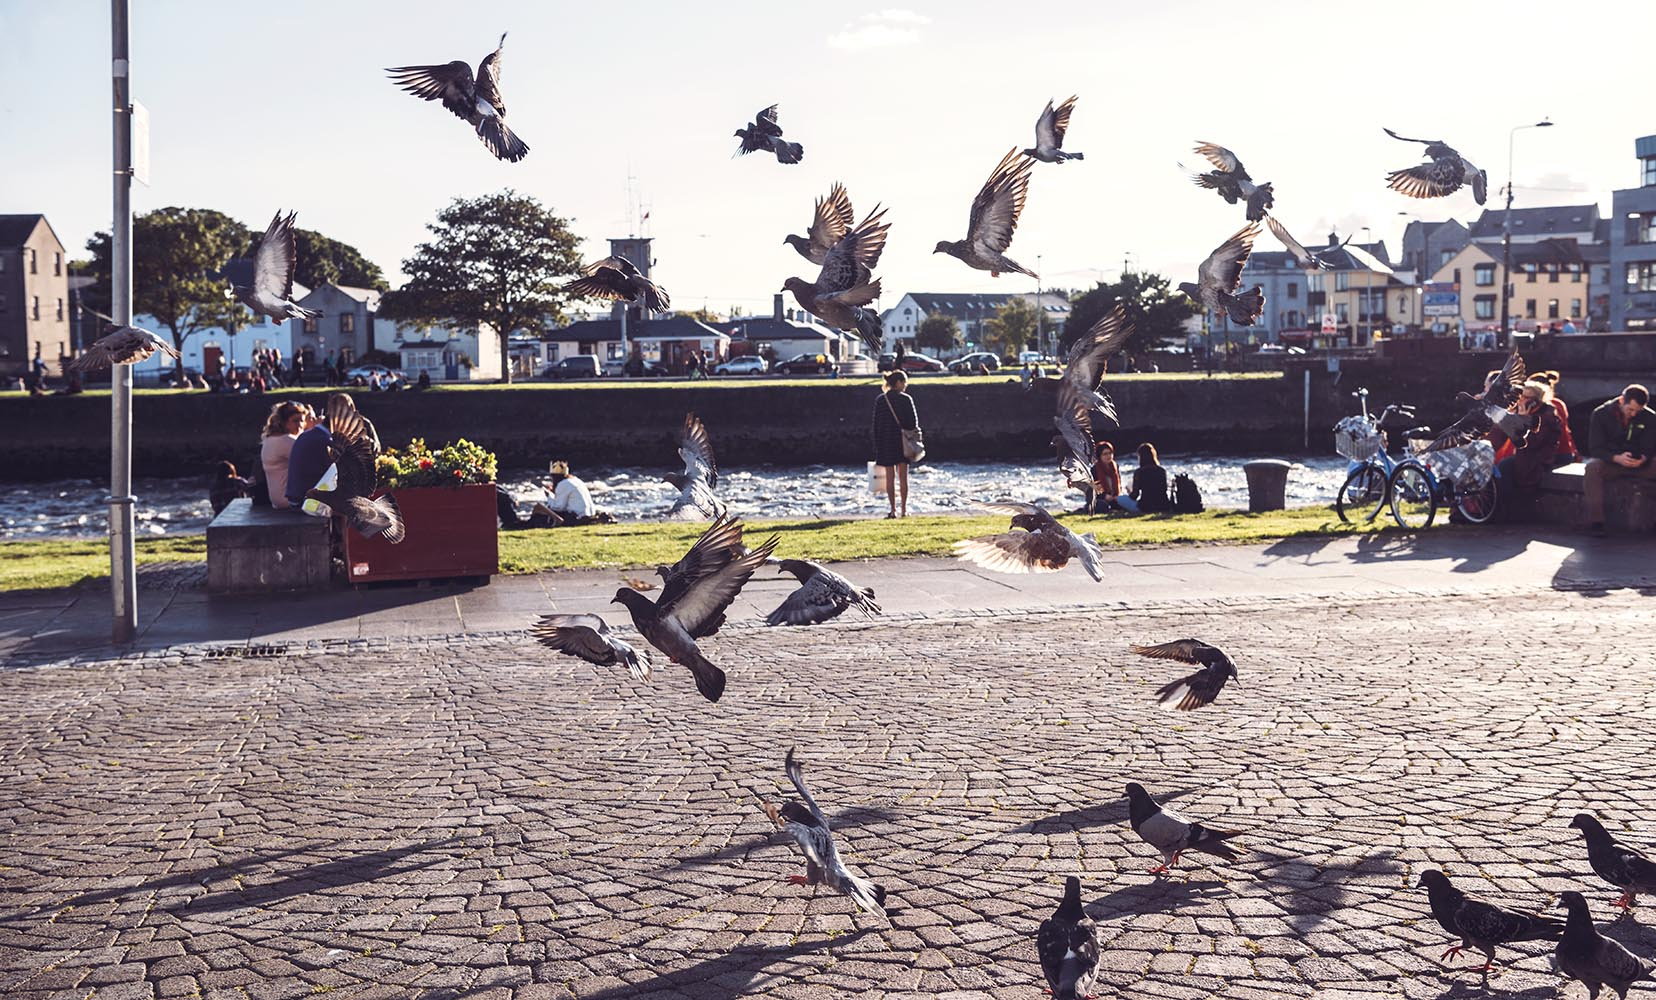 Pigeons taking off from ground